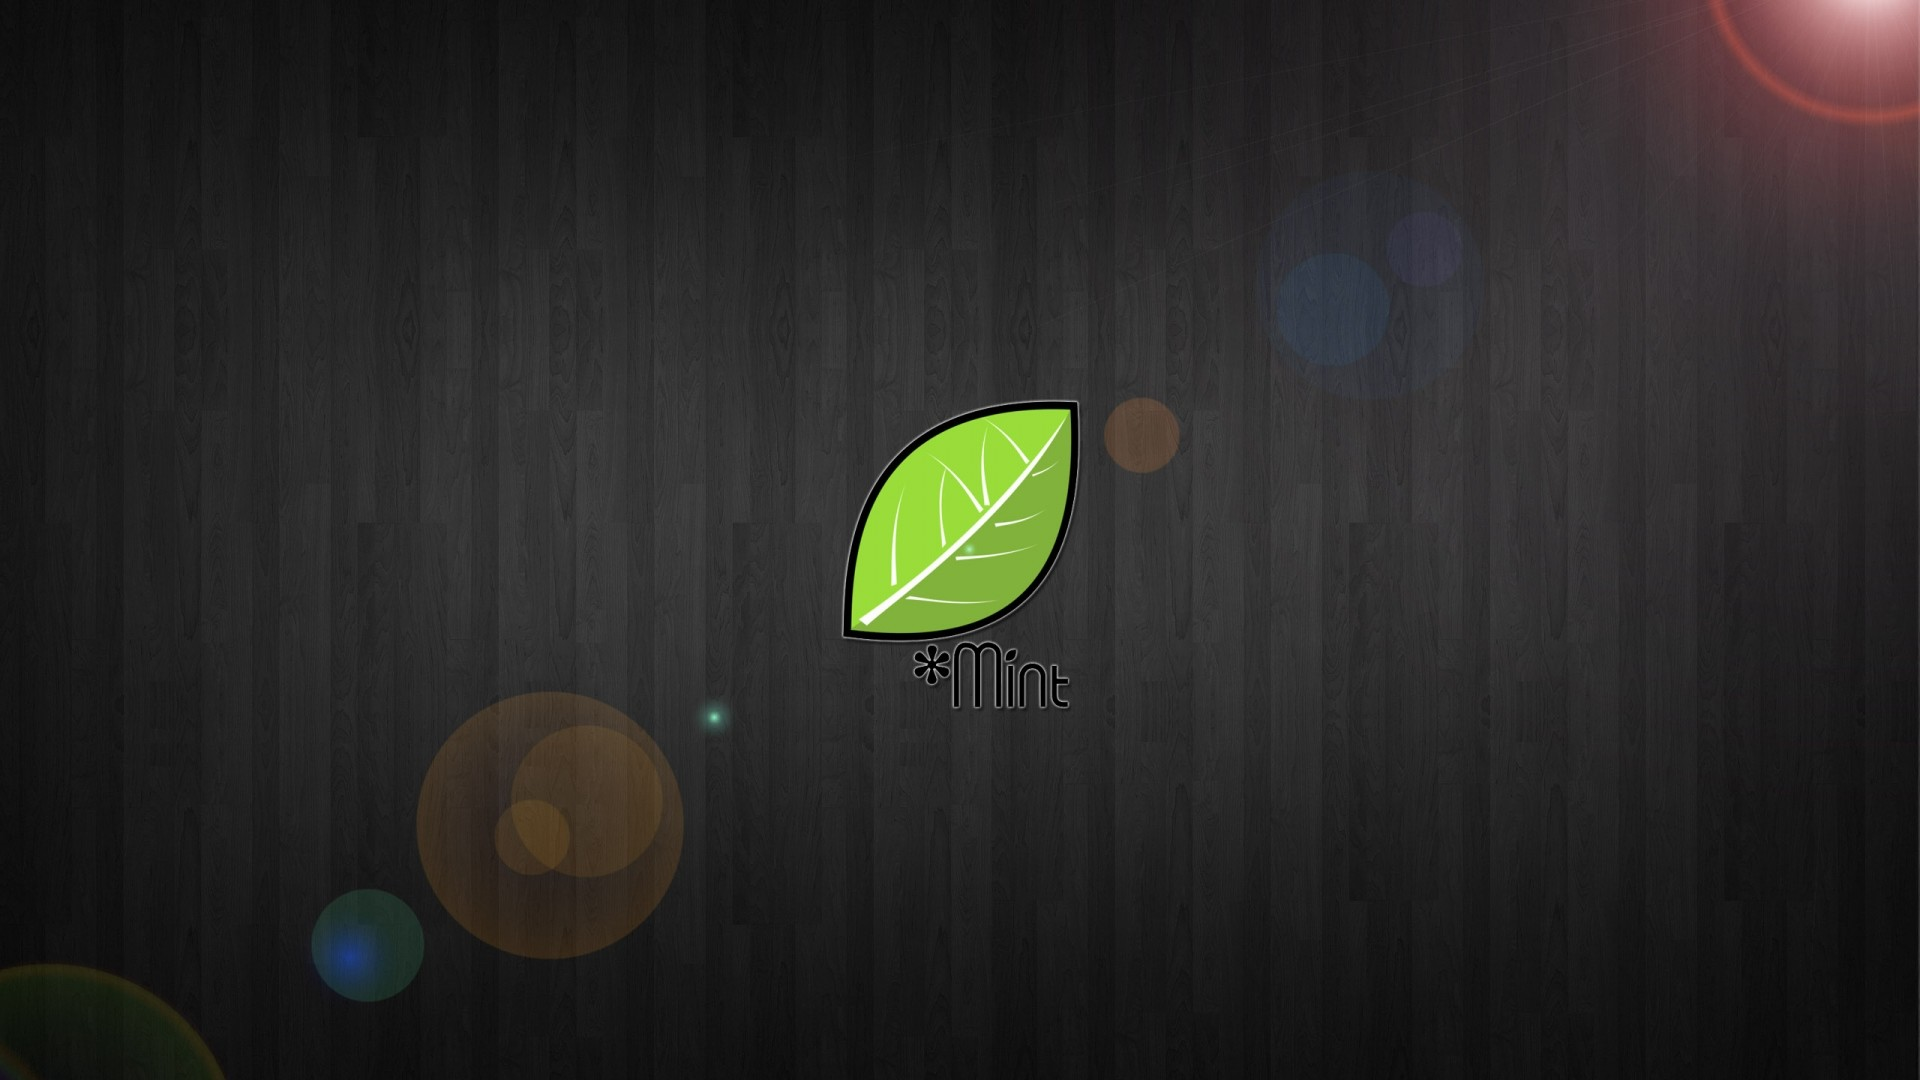 Linux Mint 15 Olivia (Cinnamon) Review | Adorable Wallpapers | Pinterest |  Linux mint and Wallpaper